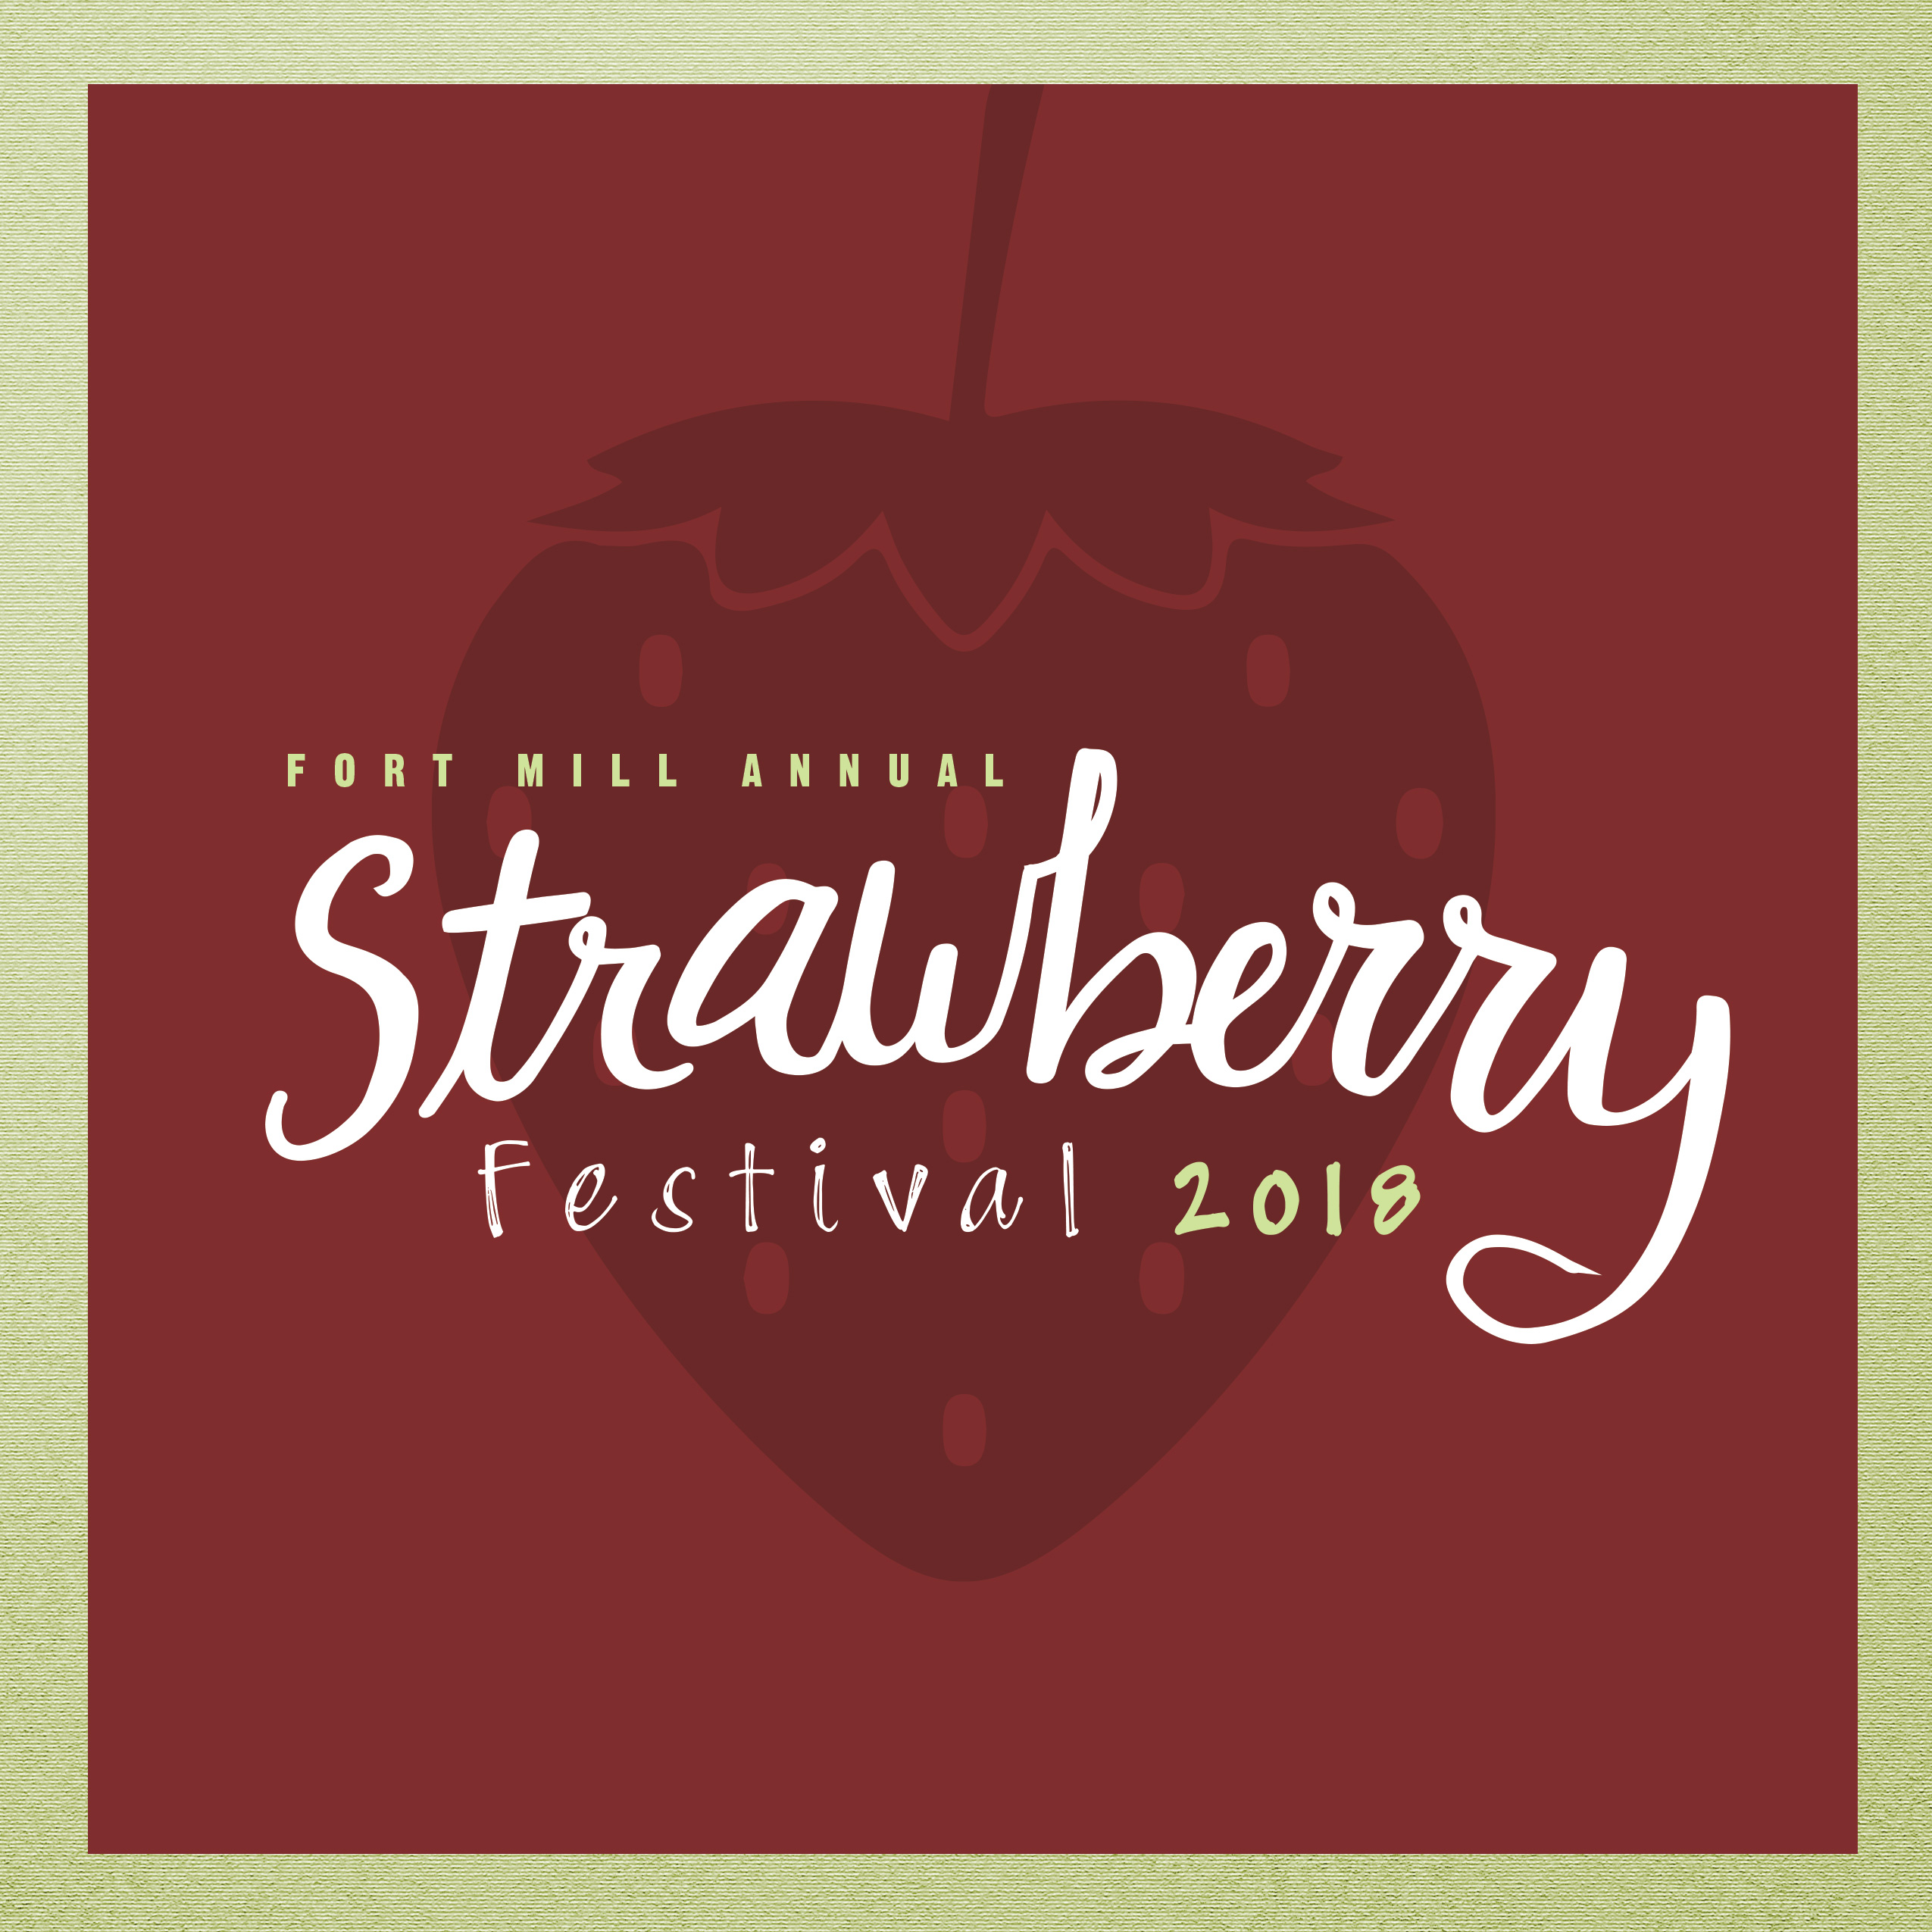 Strawberry Festival Promotional Graphic